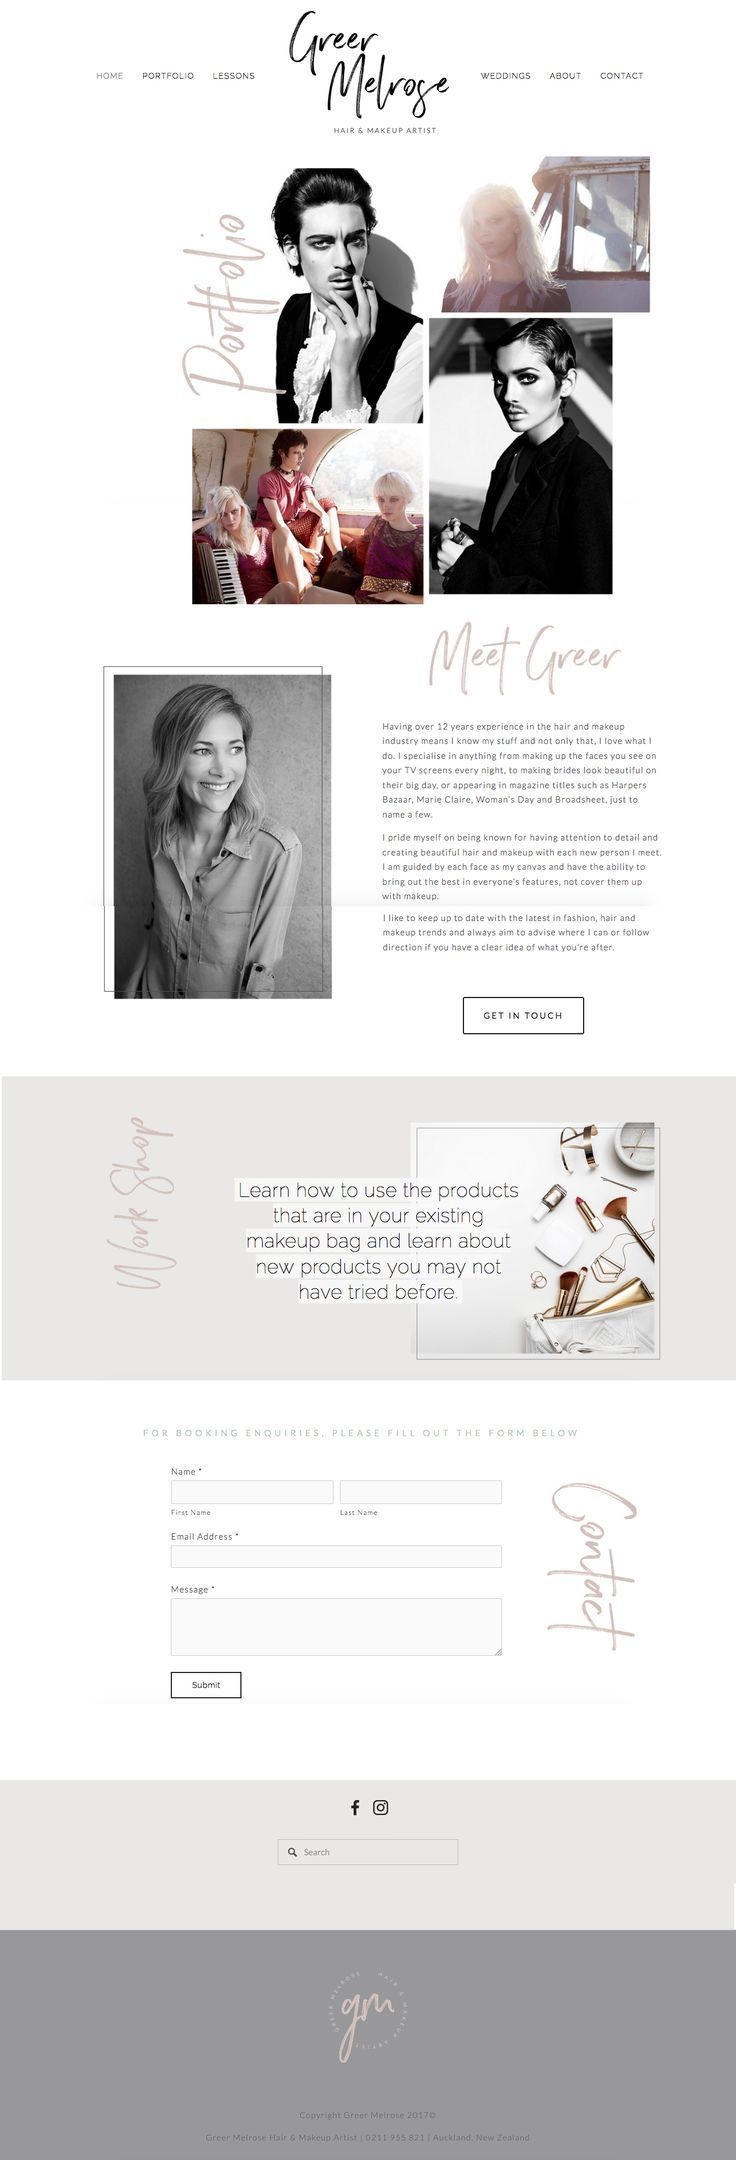 Squarespace webdesign by Polka Dot Heart Design | Makeup Artist Portfolio Website | Branding, Brand Stylist, Brand Designer, Brand Styling, Wordpress Website Design, Custom Brand design, Logo Design, Feminine brand designer, Graphic Design